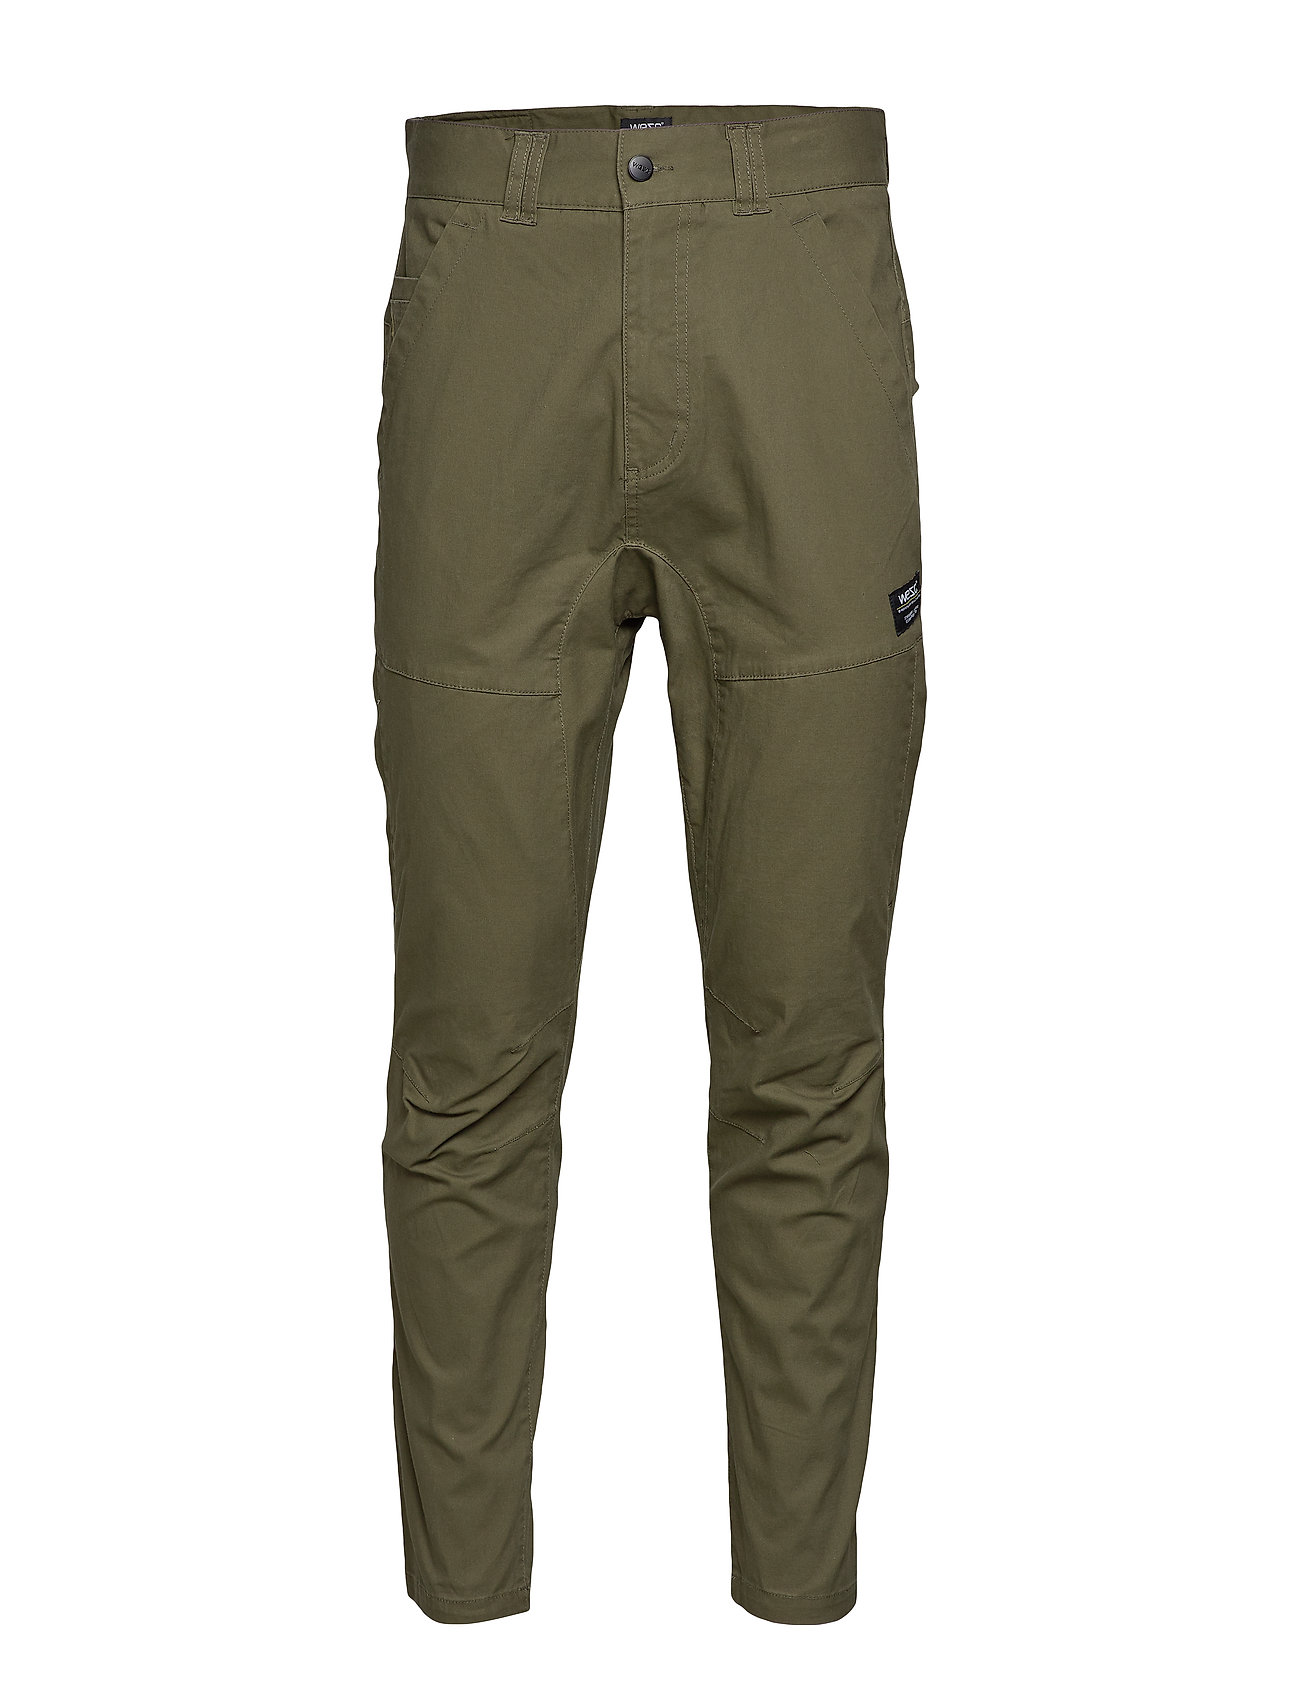 WeSC Montauk Pant - OLIVE NIGHT